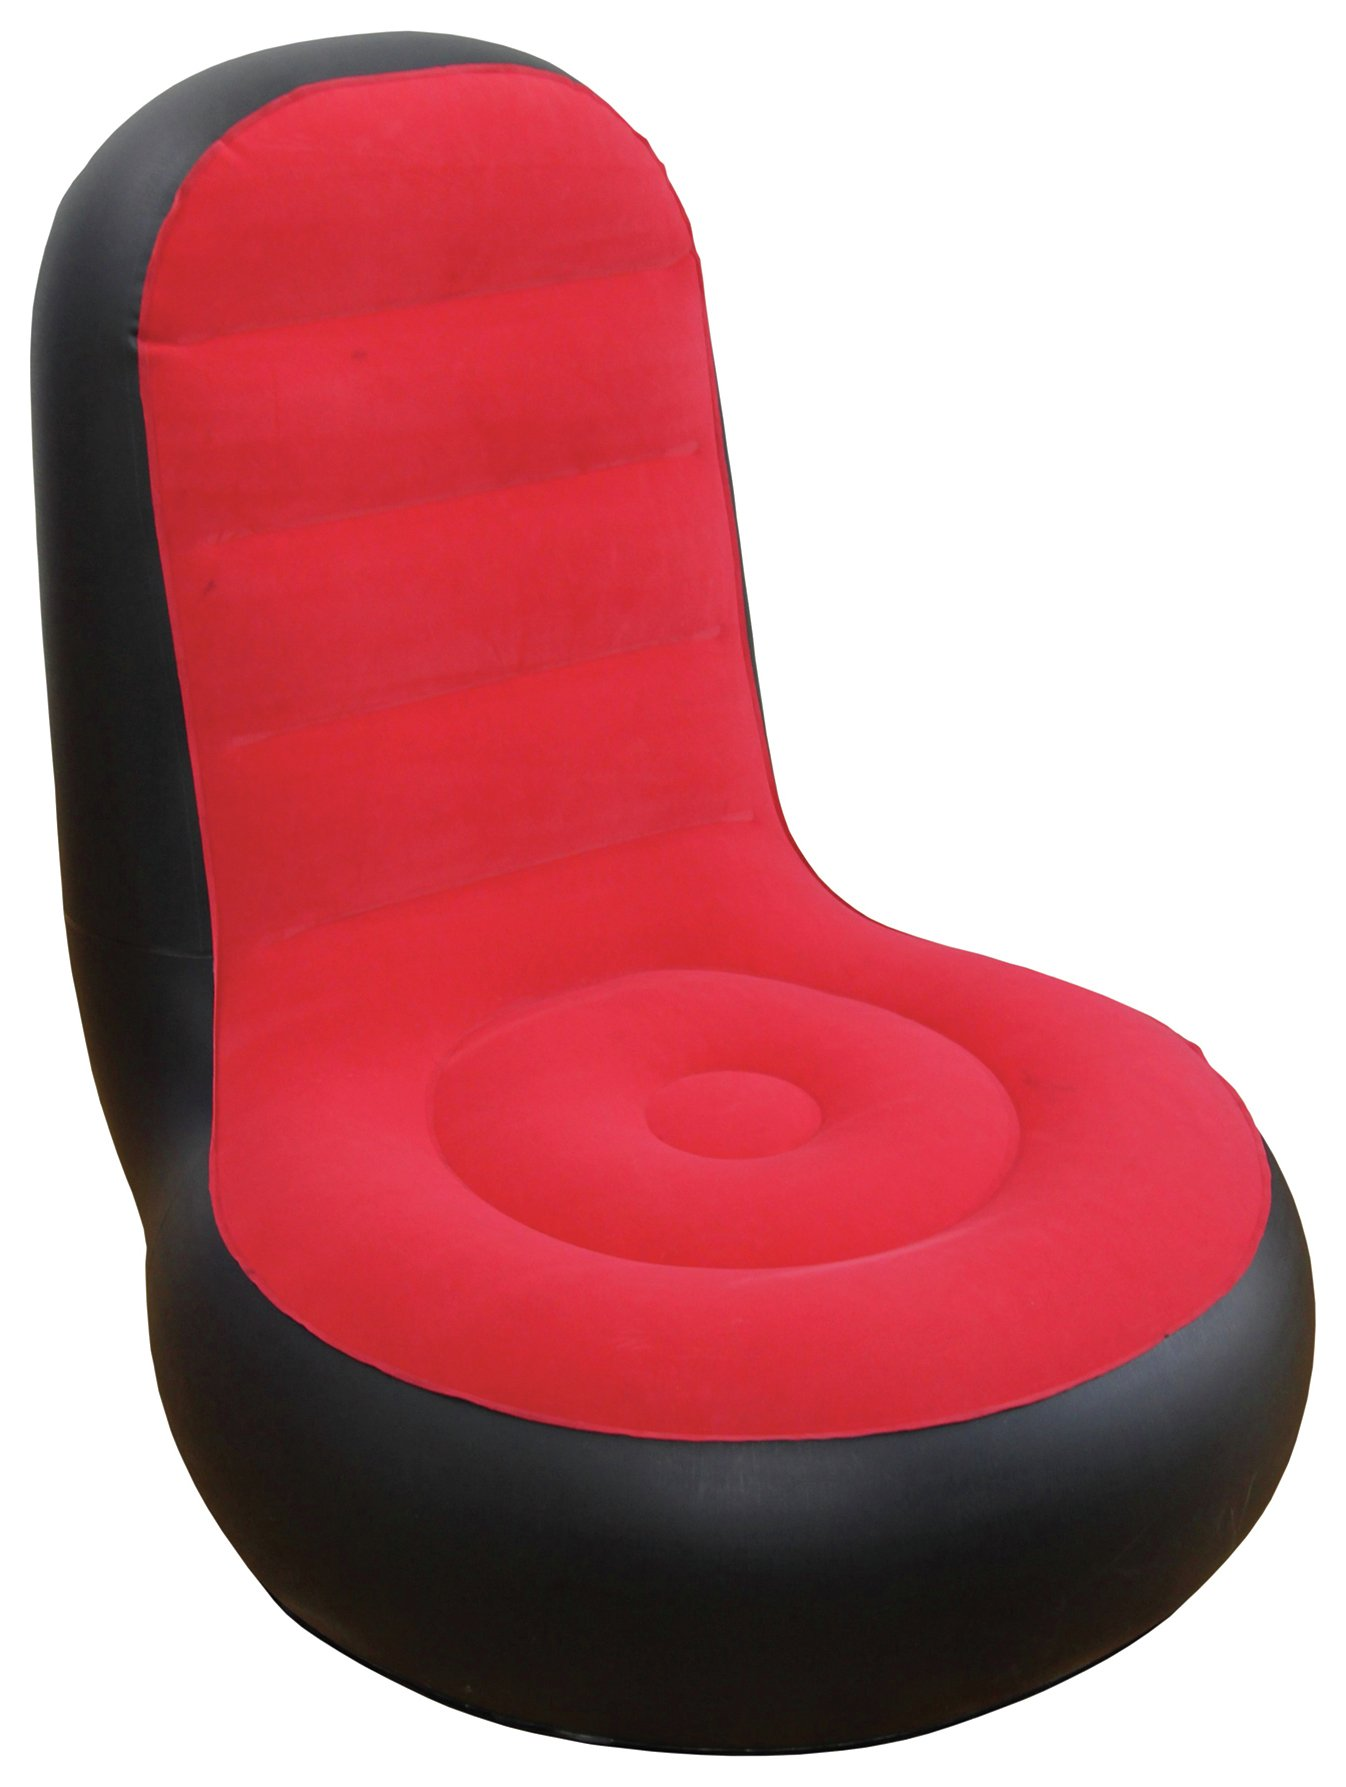 Image of Easy Inflatable Chair